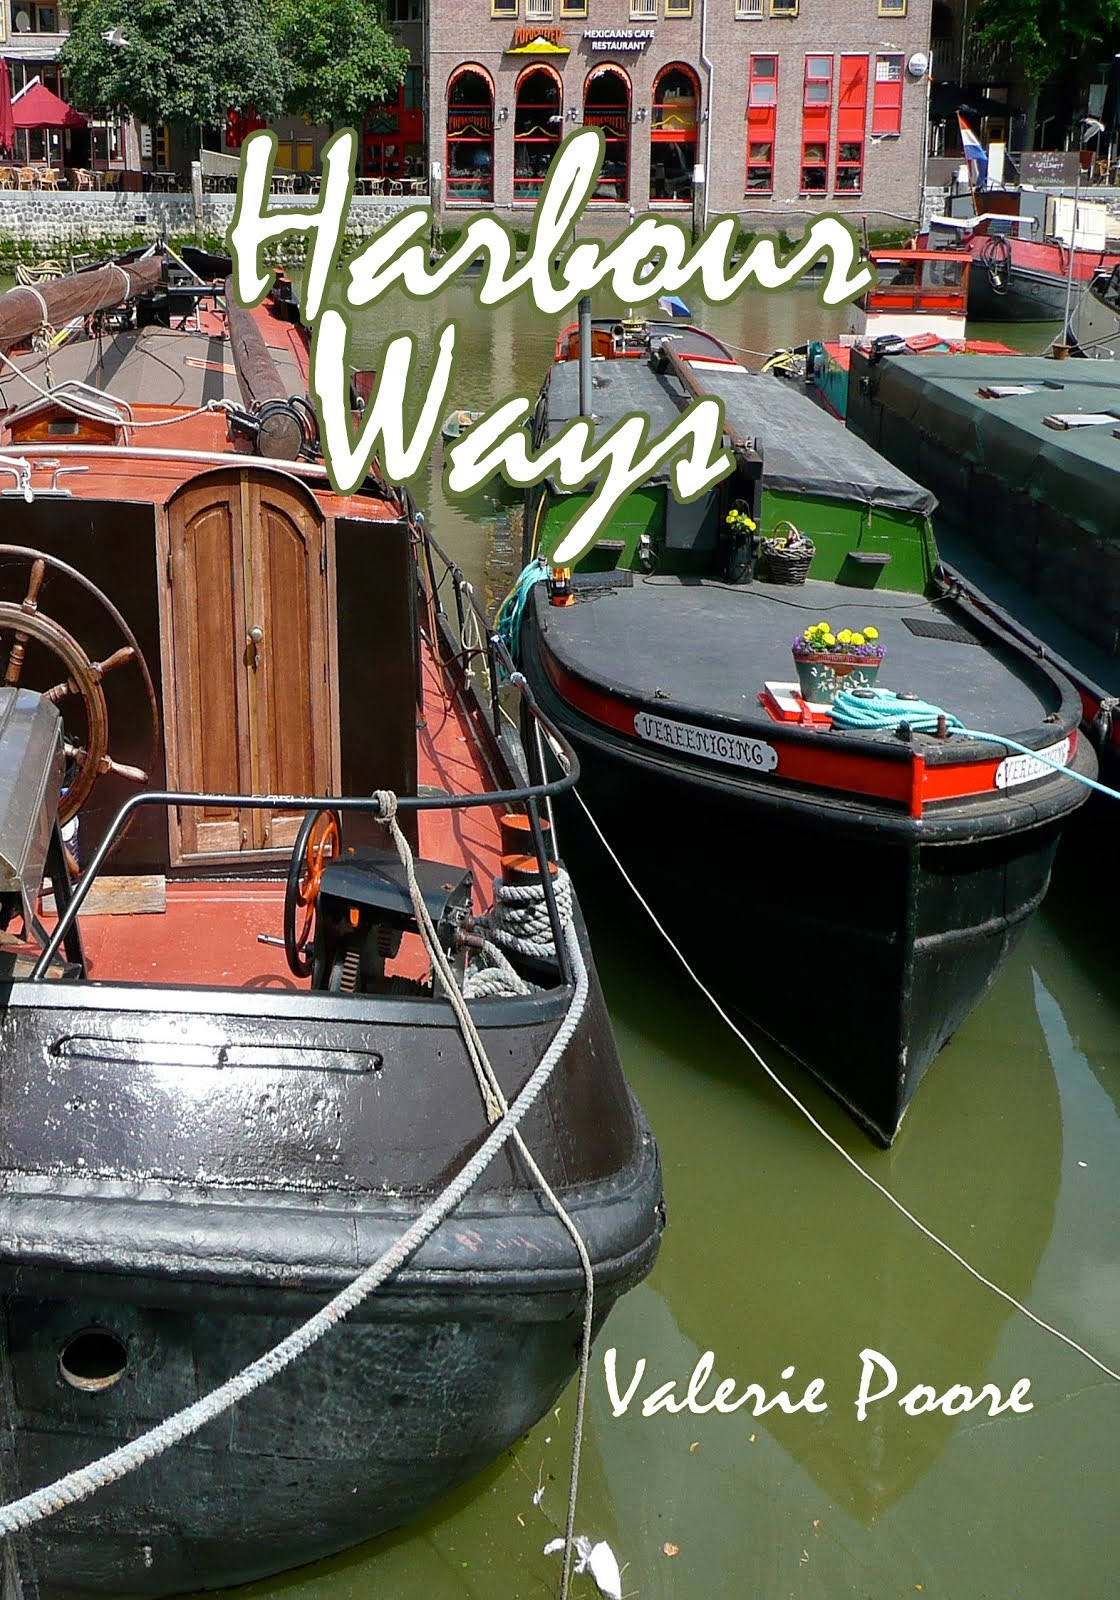 Harbour Ways on Kindle